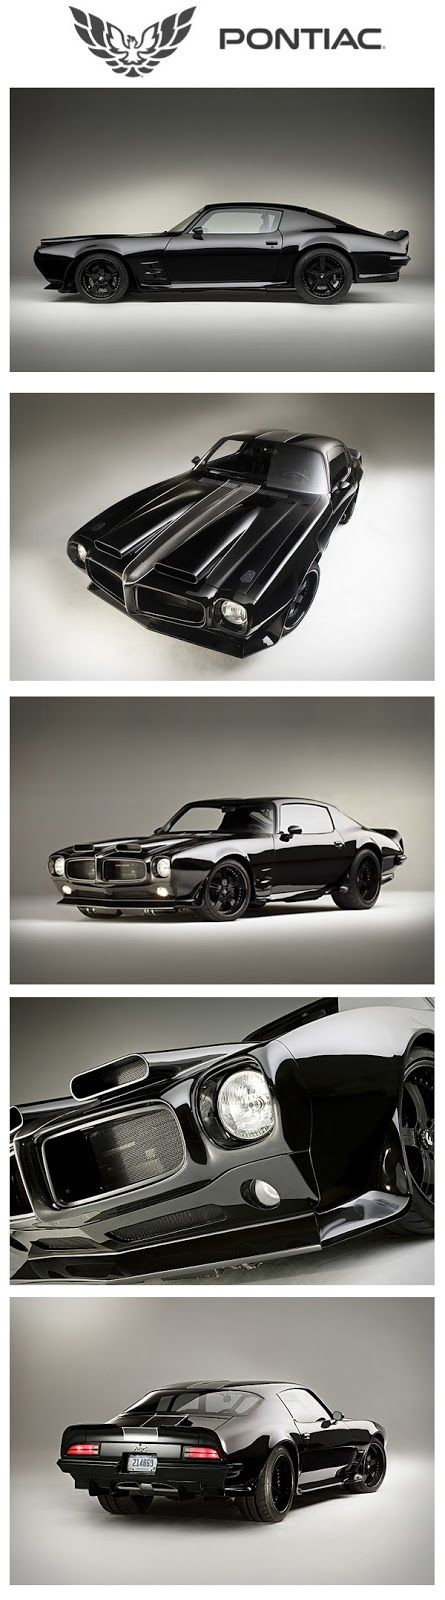 '70 #Pontiac Firebird | To the Bat Cave... | Pinterest | Cars, Muscle Cars and Pontiac Firebird